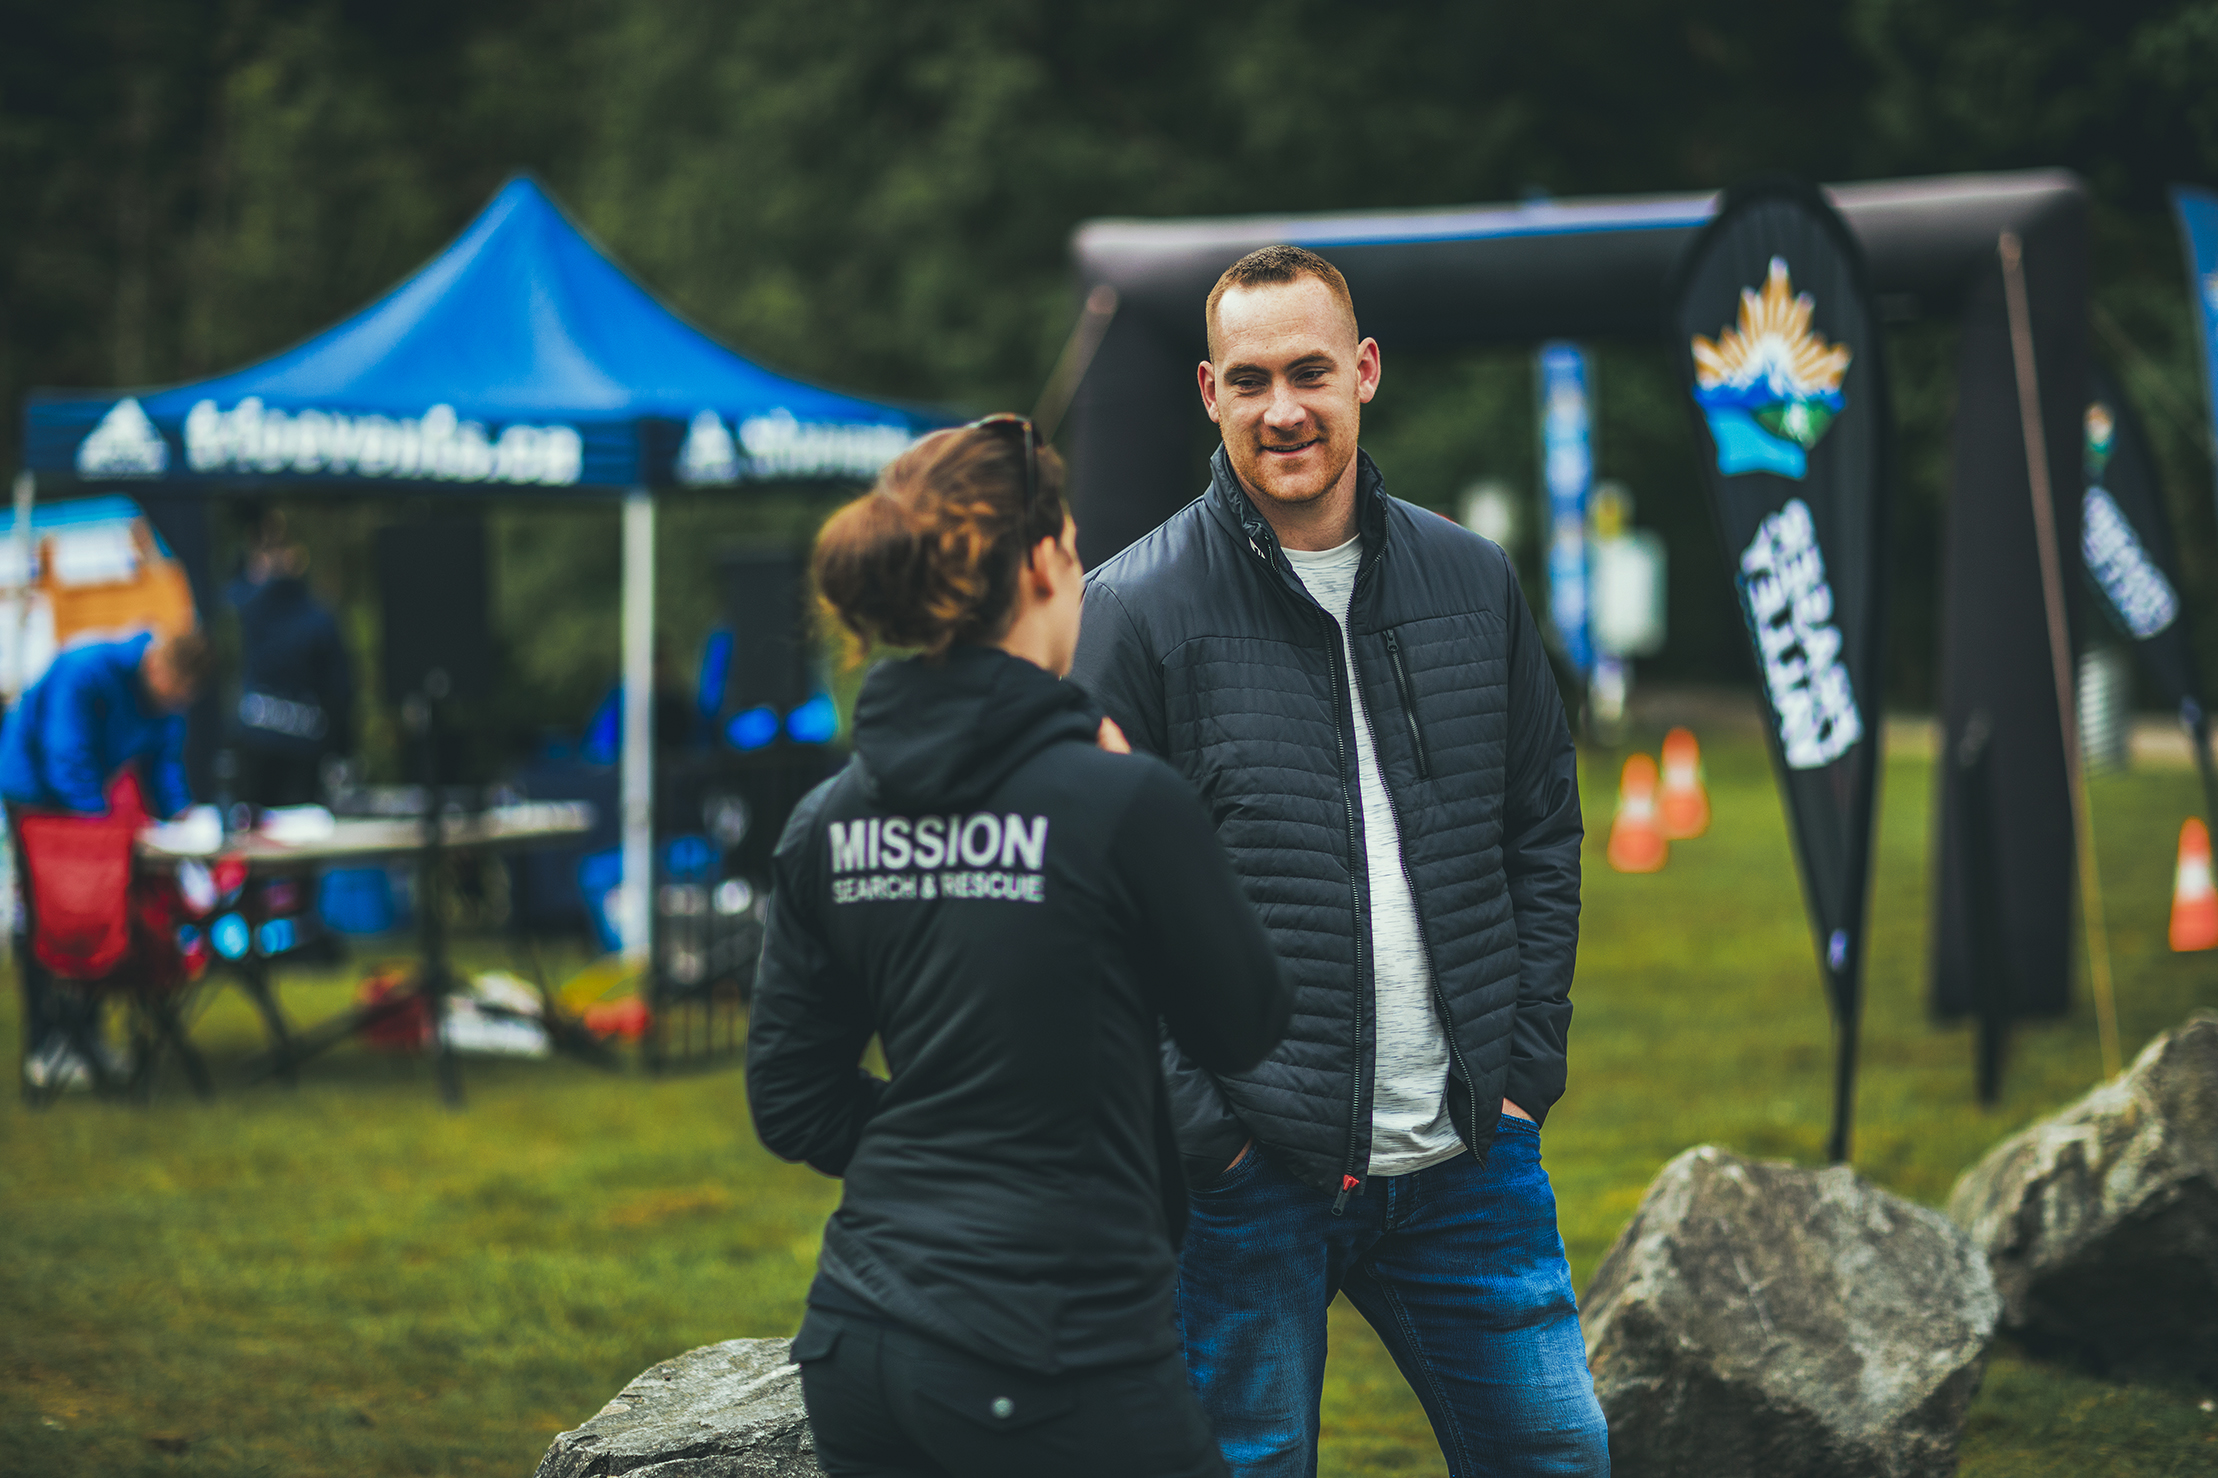 Fraser Valley Trail Races - Bear Mountain - IMG_1211 by Brice Ferre Studio - Vancouver Portrait Adventure and Athlete Photographer.jpg